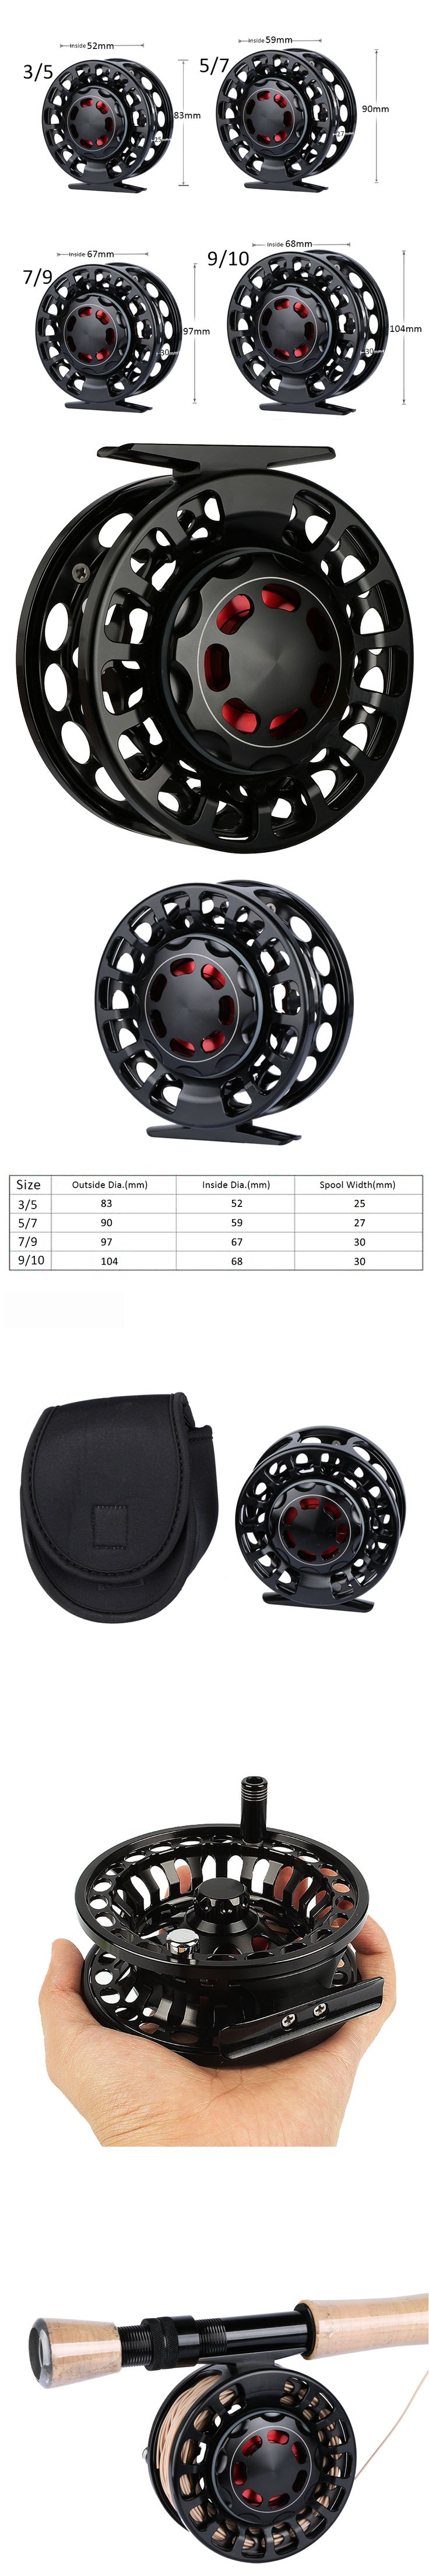 Goture Aluminum Alloy Fly Fishing Reel Saltwater Waterproof CNC Lightweight Fly Reel Coil 2+1 BB 3/5, 5/7, 7/9,9/10 WT